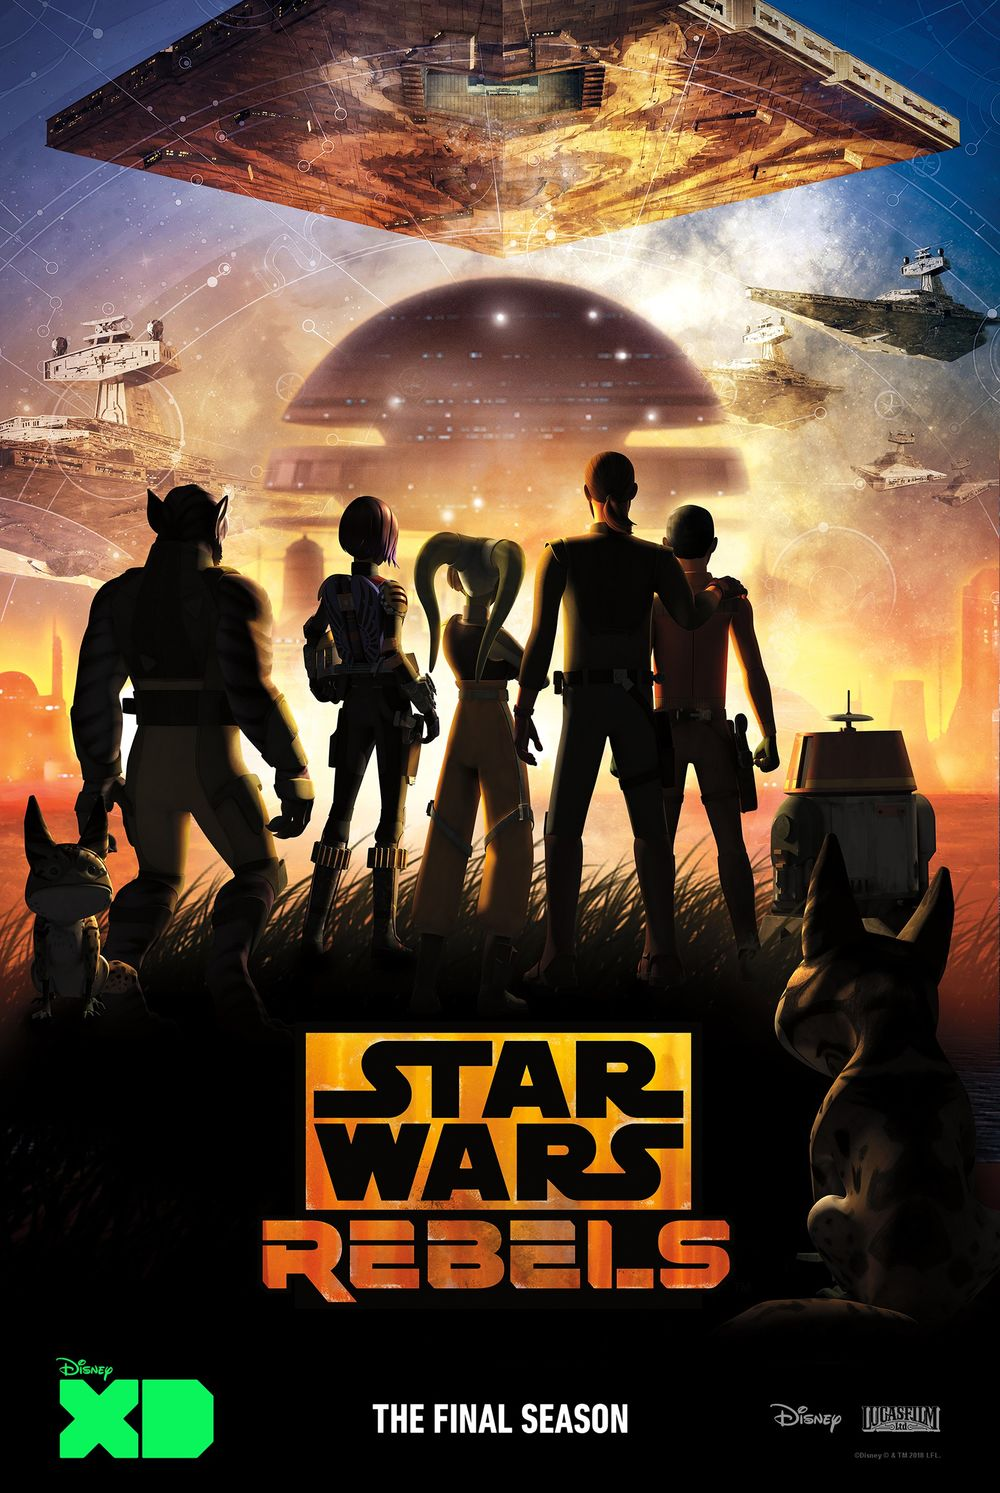 Star Wars Rebels Tv Series 2014 2018 Imdb